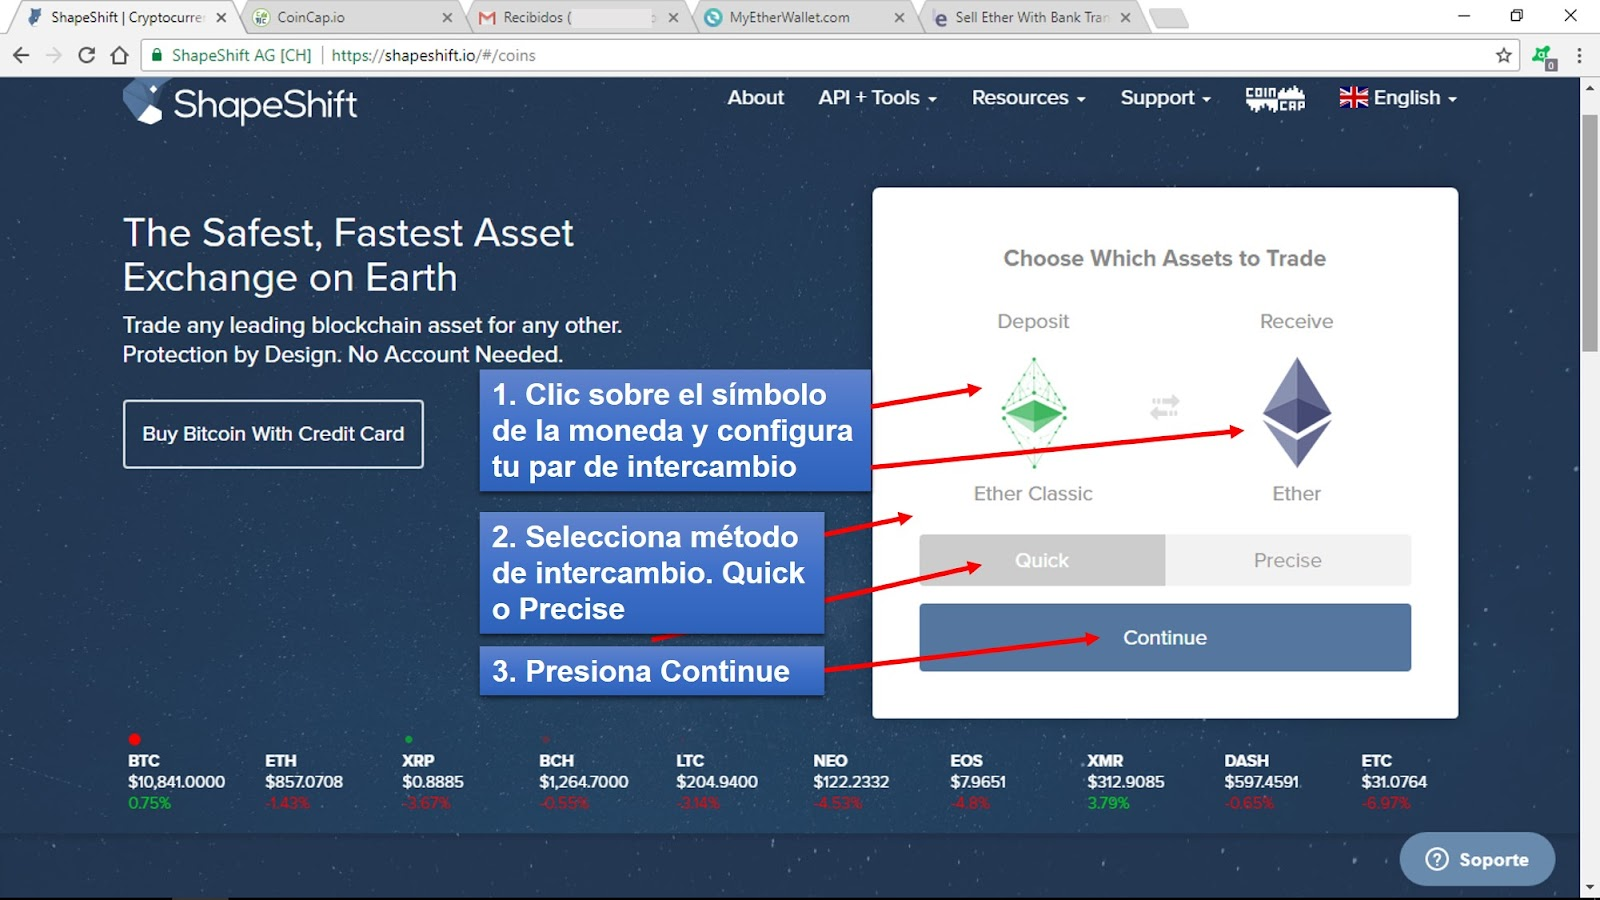 How To Set Up Monero Gui Wallet 1060 Hashrate For Monero